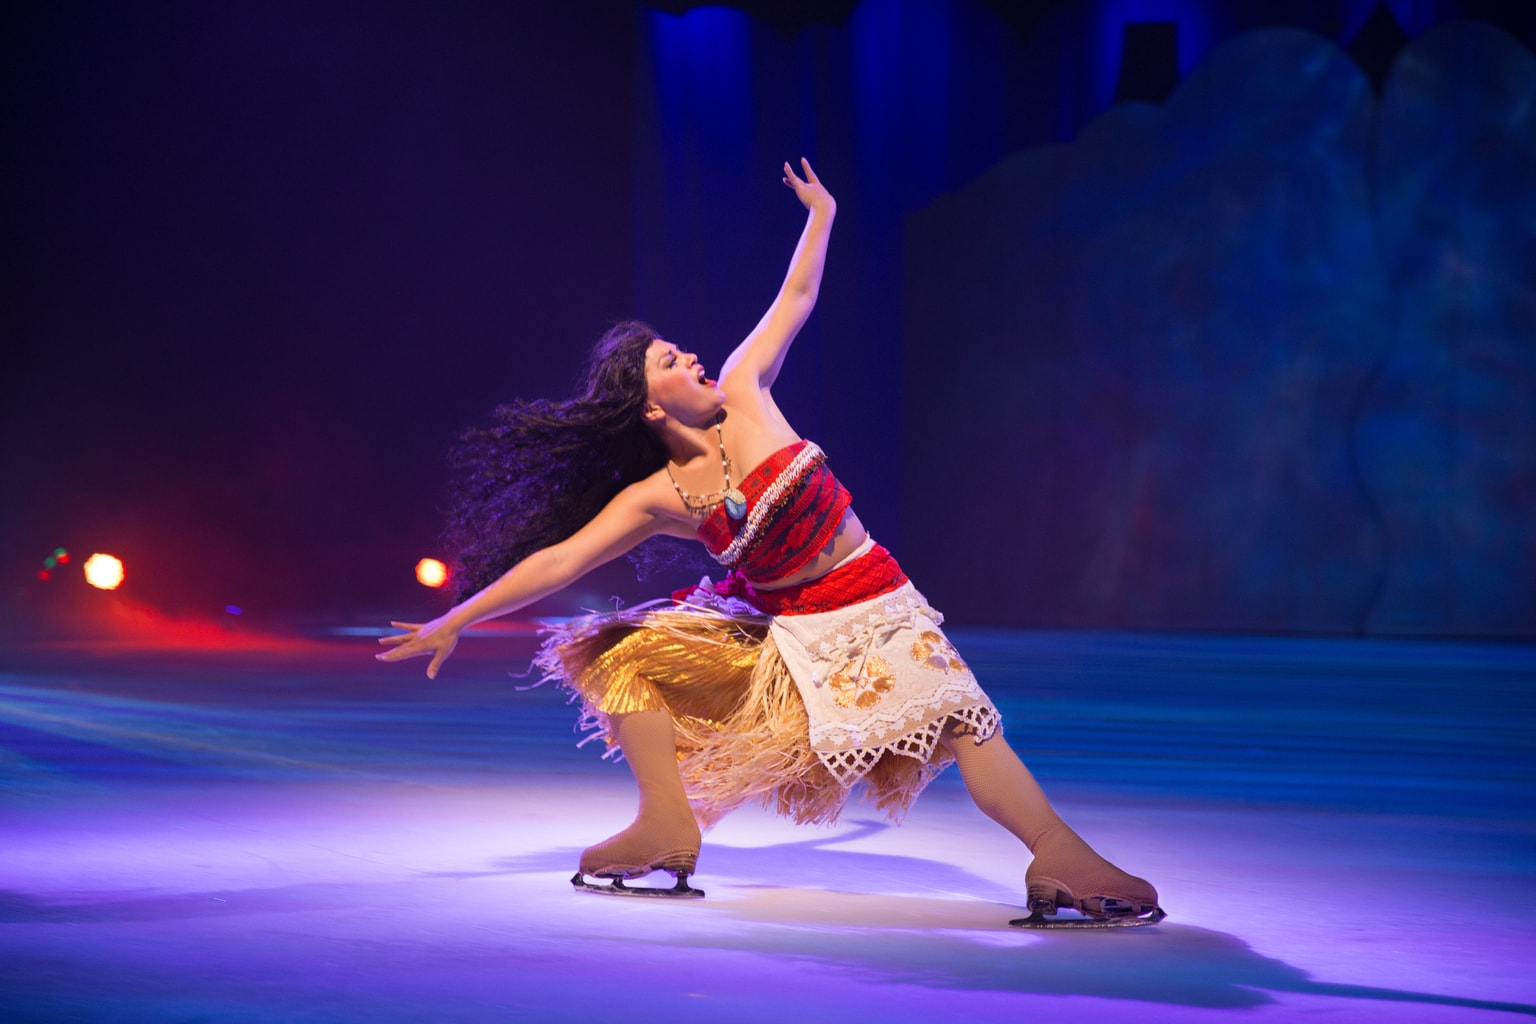 Disney On Ice in Portland through October 28 will make you Dare to Dream - Moana